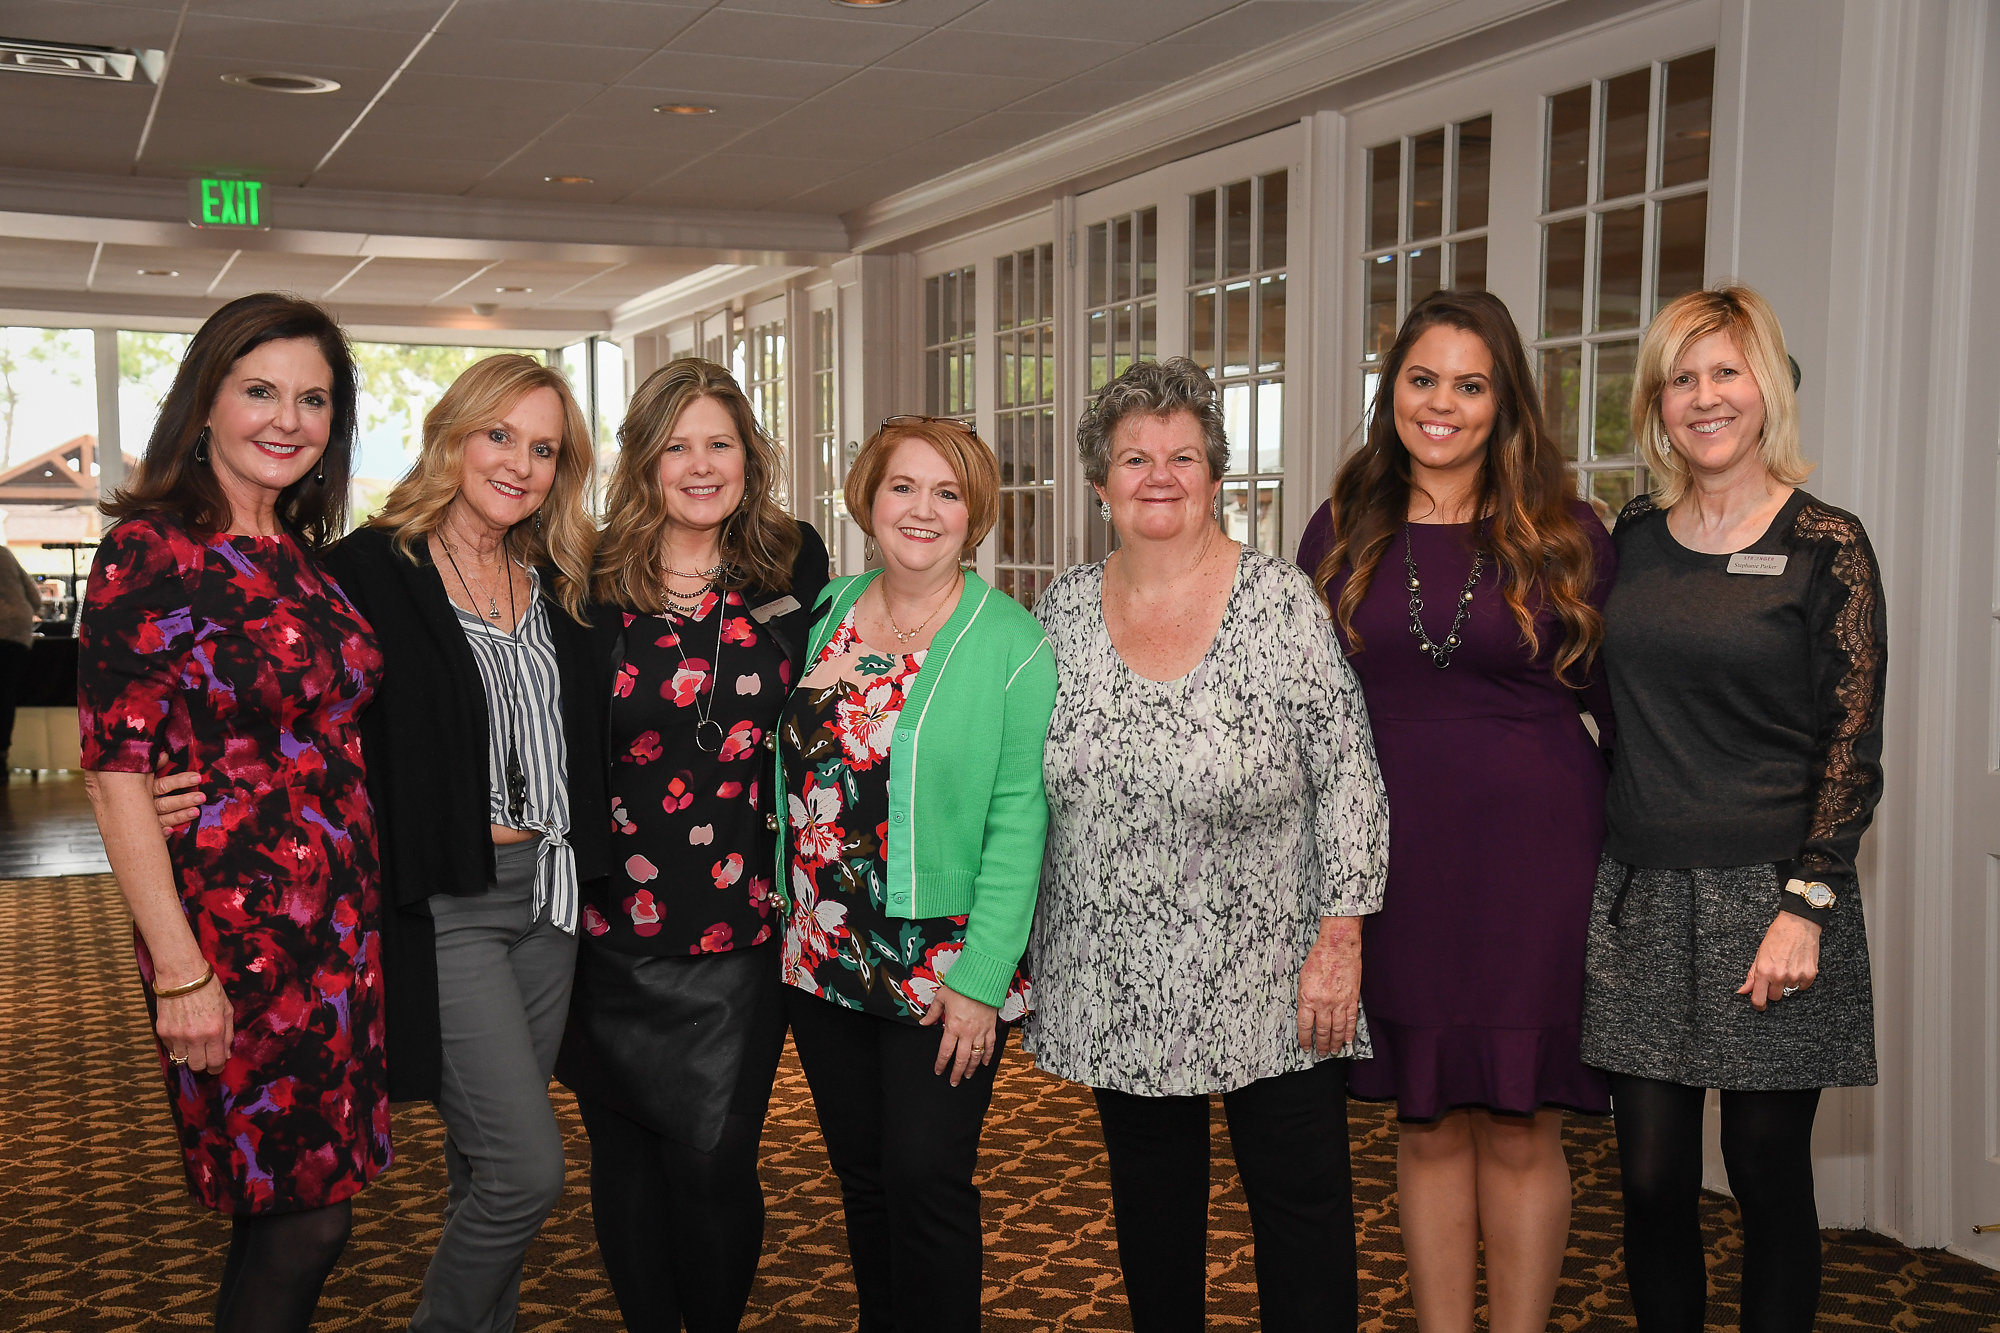 Freedom Luncheon Planning Committee - Thank you to their amazing dedication to bringing an inspiring and encouraging women's luncheon!